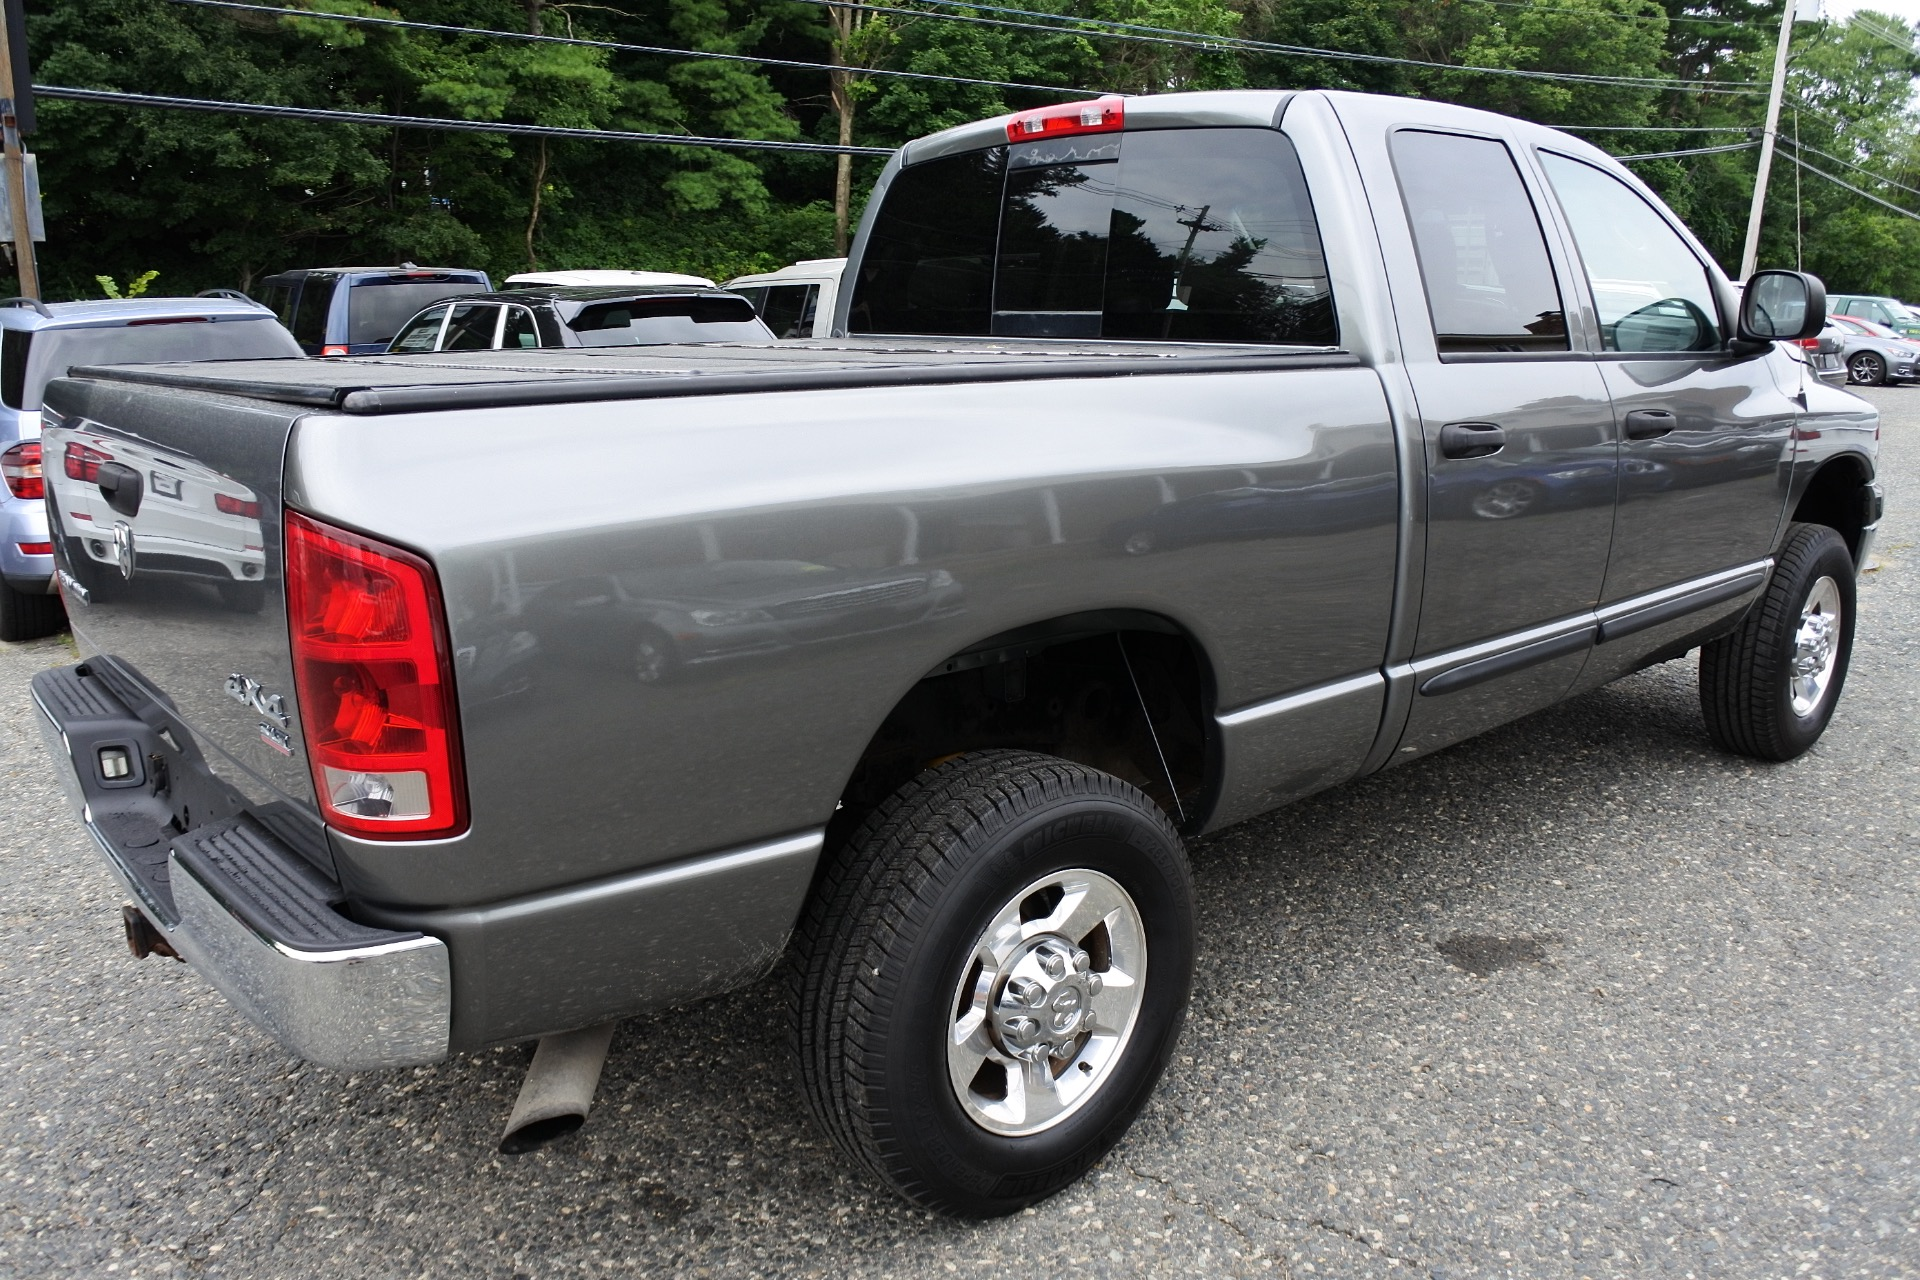 Used 2006 Dodge Ram 2500 4dr Quad Cab 140.5 4WD SLT Used 2006 Dodge Ram 2500 4dr Quad Cab 140.5 4WD SLT for sale  at Metro West Motorcars LLC in Shrewsbury MA 5